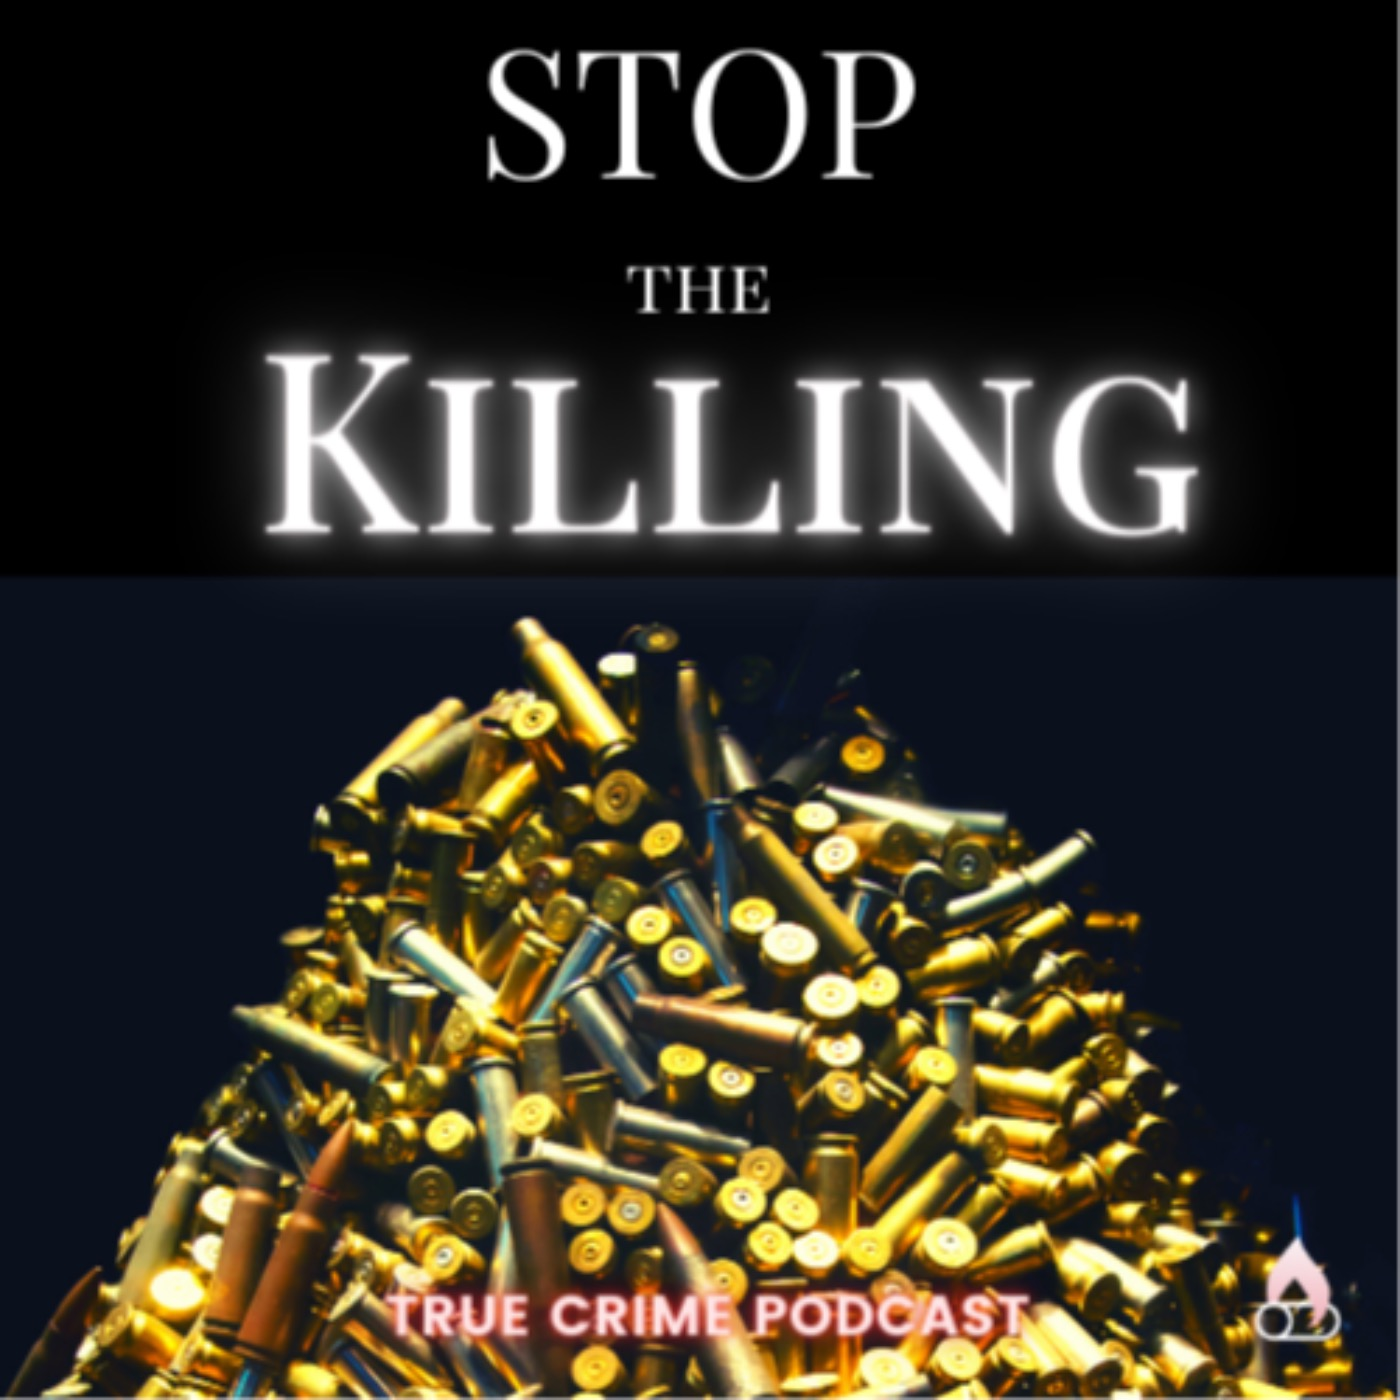 Introducing STOP THE KILLING